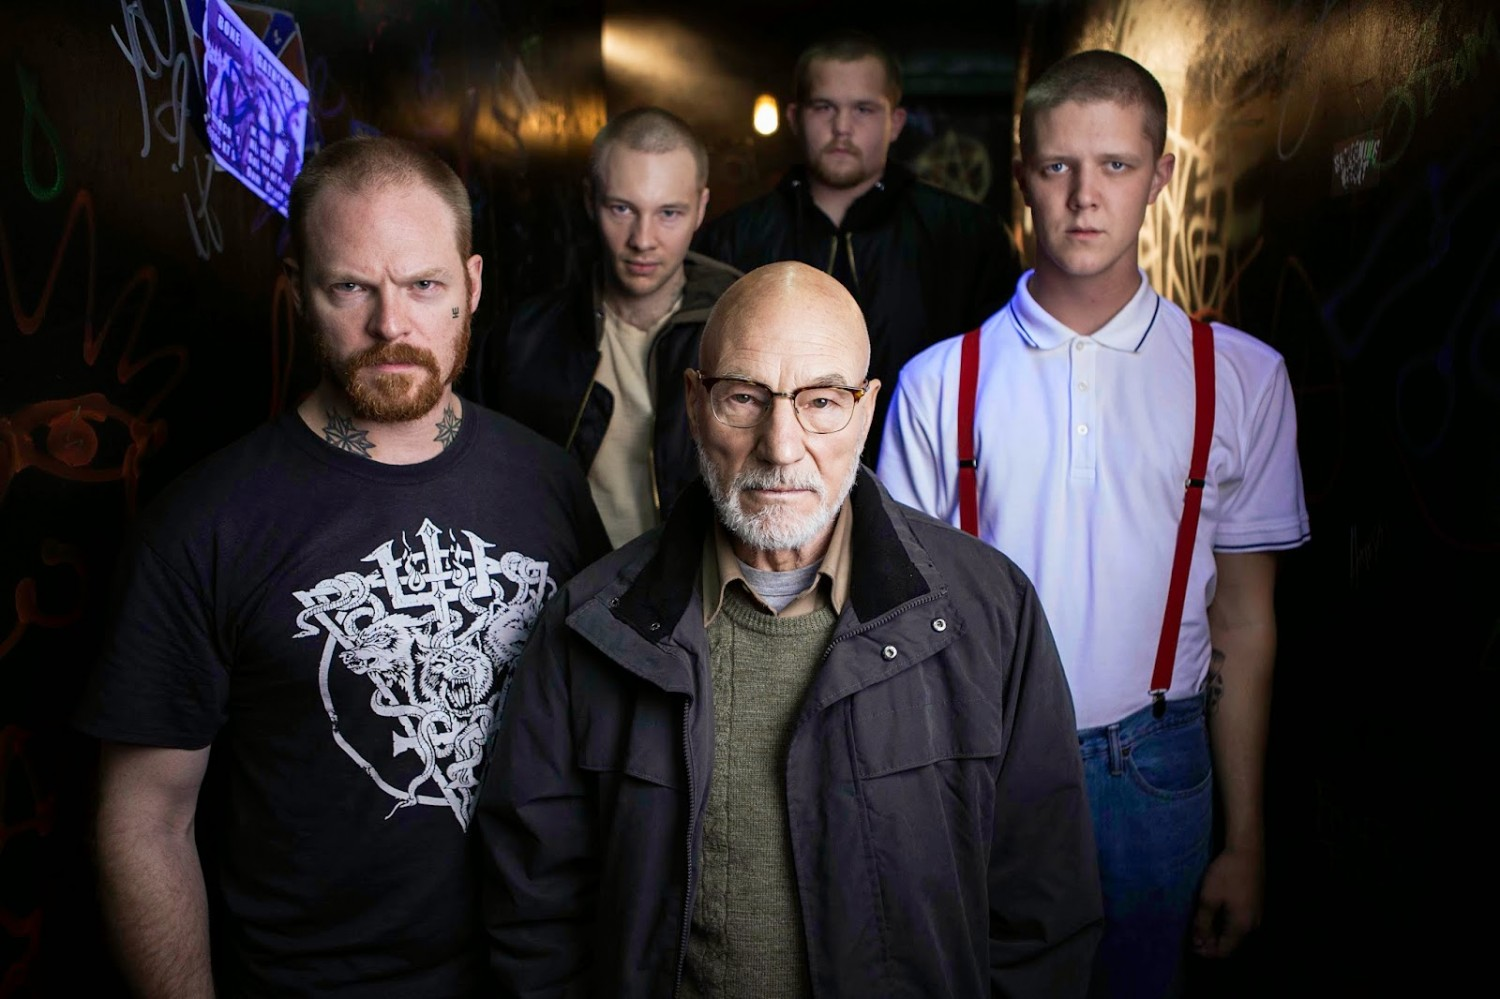 2015 Stockholm Film Festival unleashes Twilight Zone Film Lineup, incl. GREEN ROOM